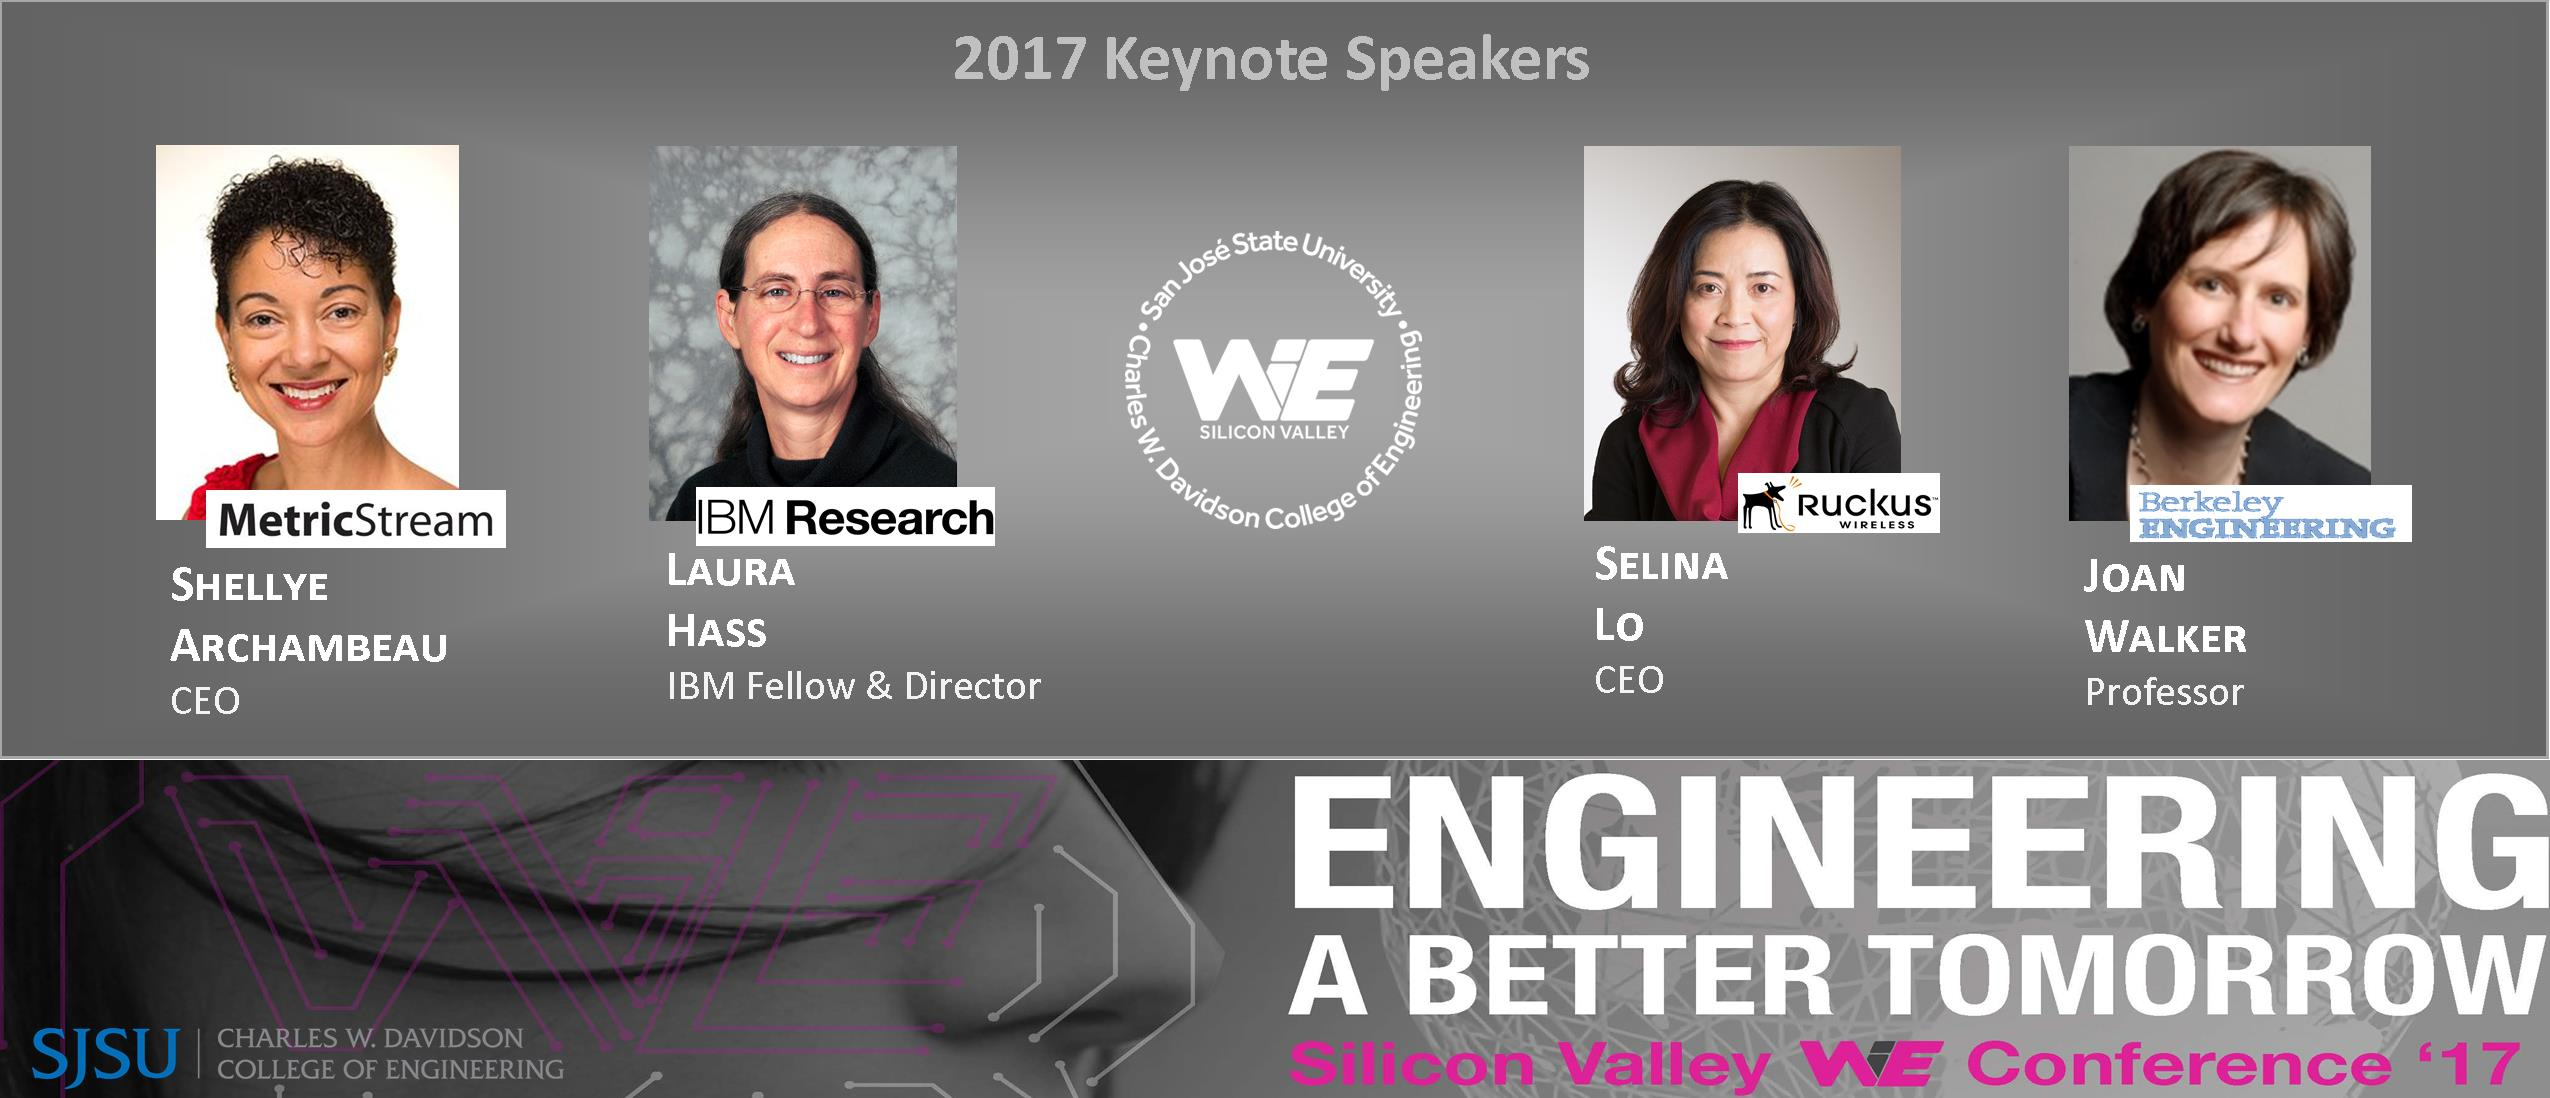 WiE 2017 Keynote Speakers